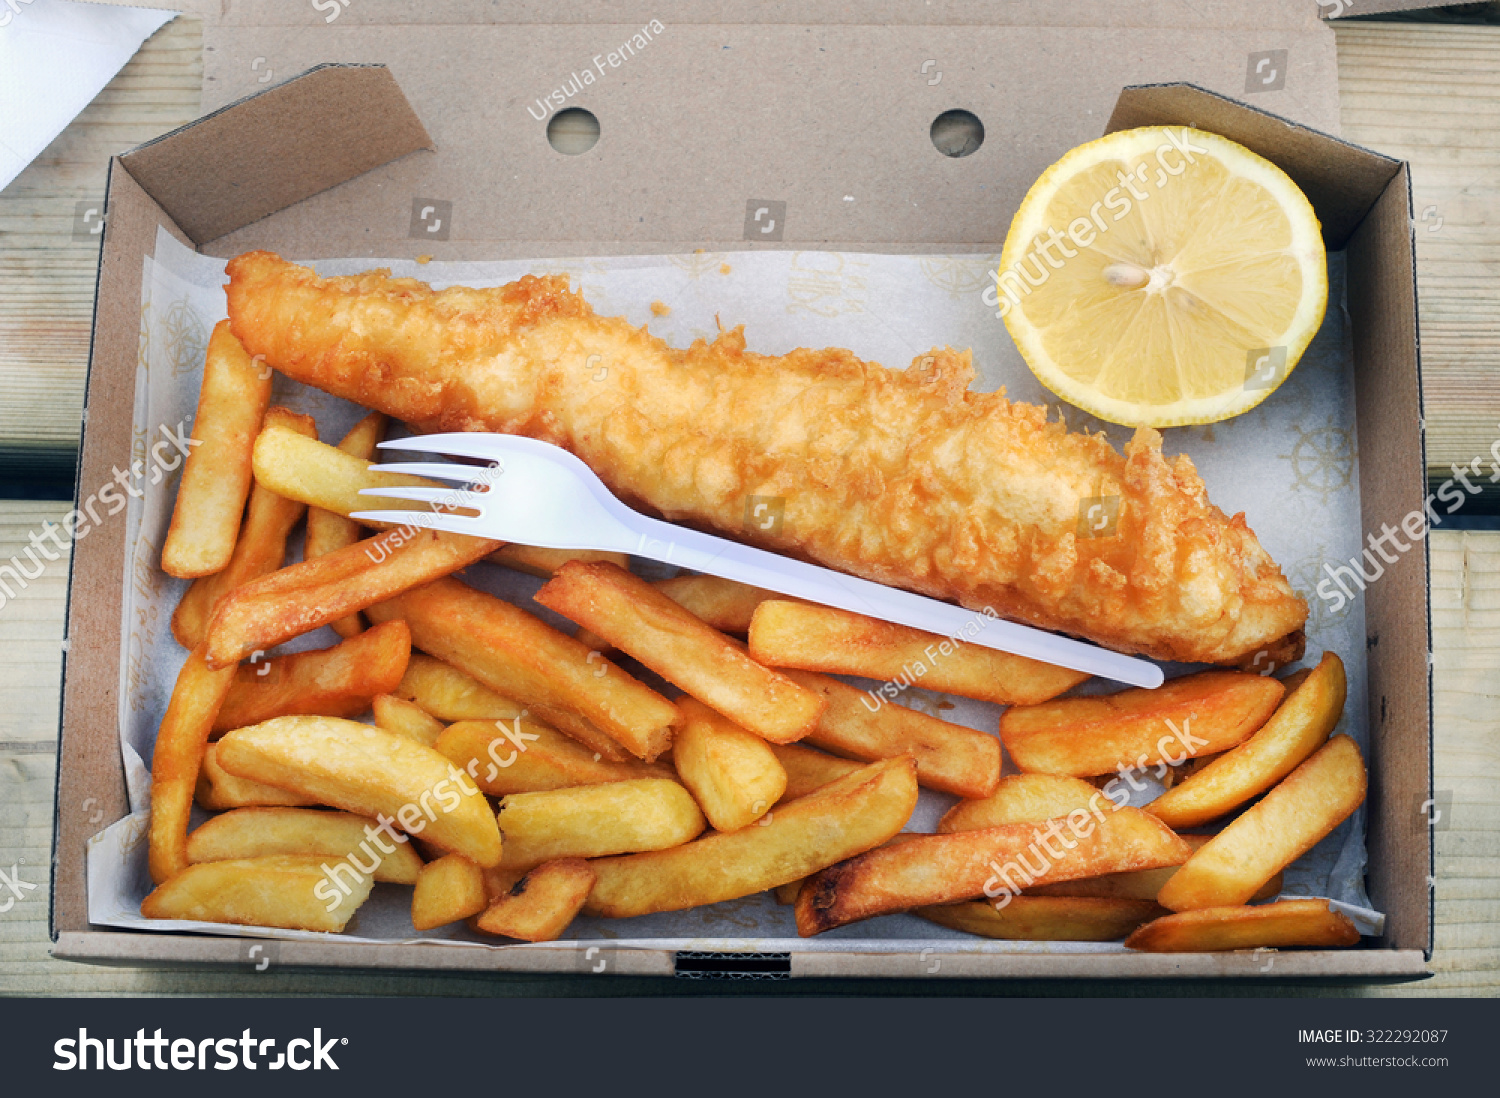 Fish chipsiceland street food stock photo 322292087 for Icelandic fish and chips